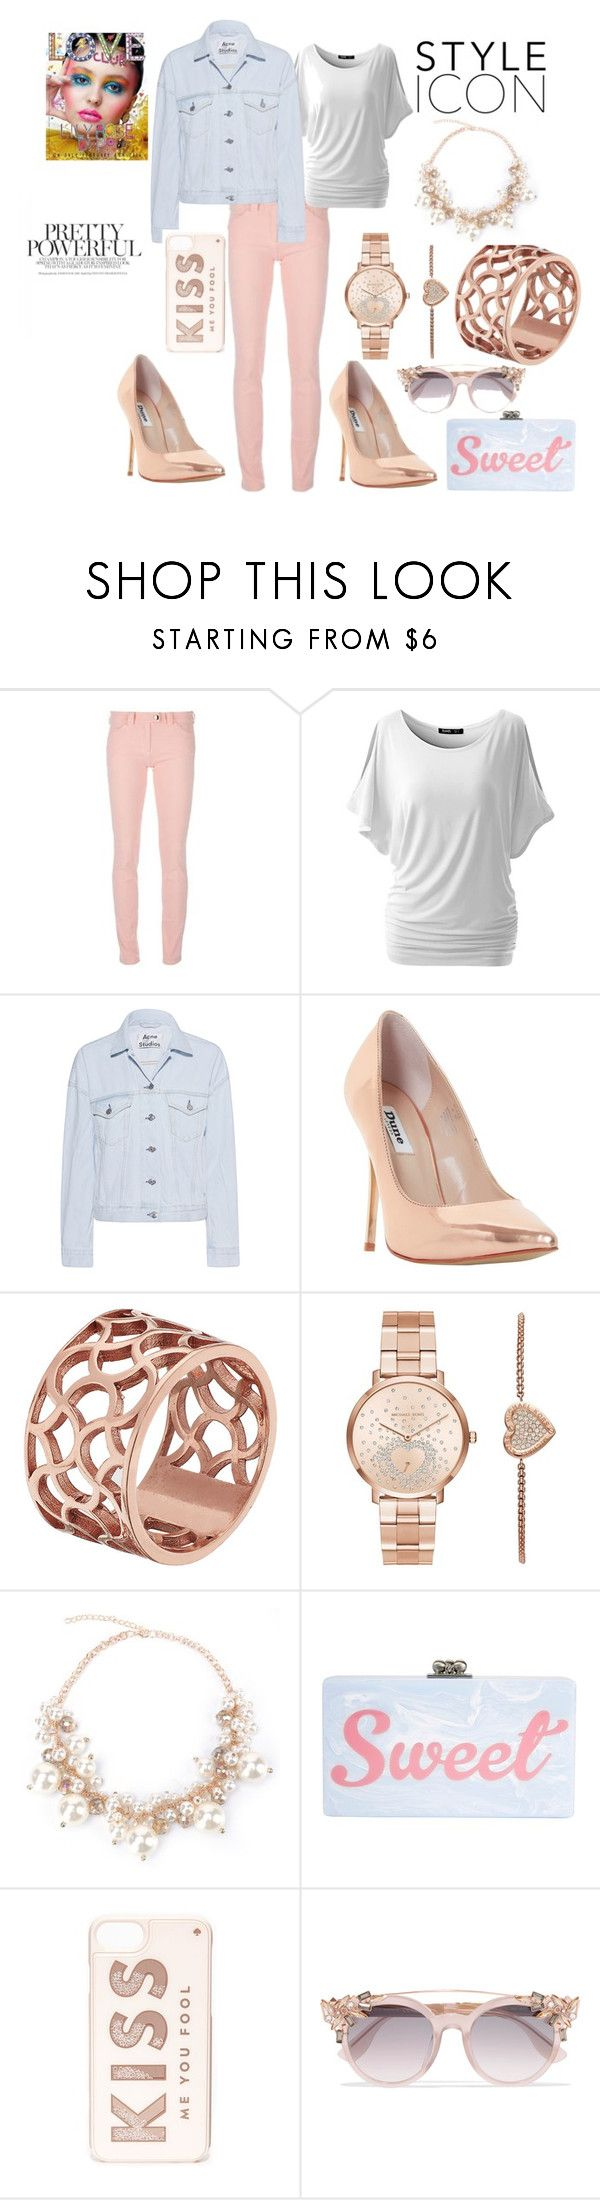 """Casual Date Night- Spring/Summer 2017"" by ladylmmoore ❤ liked on Polyvore featuring Balenciaga, Acne Studios, Dune, Tartesia, Michael Kors, Edie Parker, Kate Spade and Jimmy Choo"